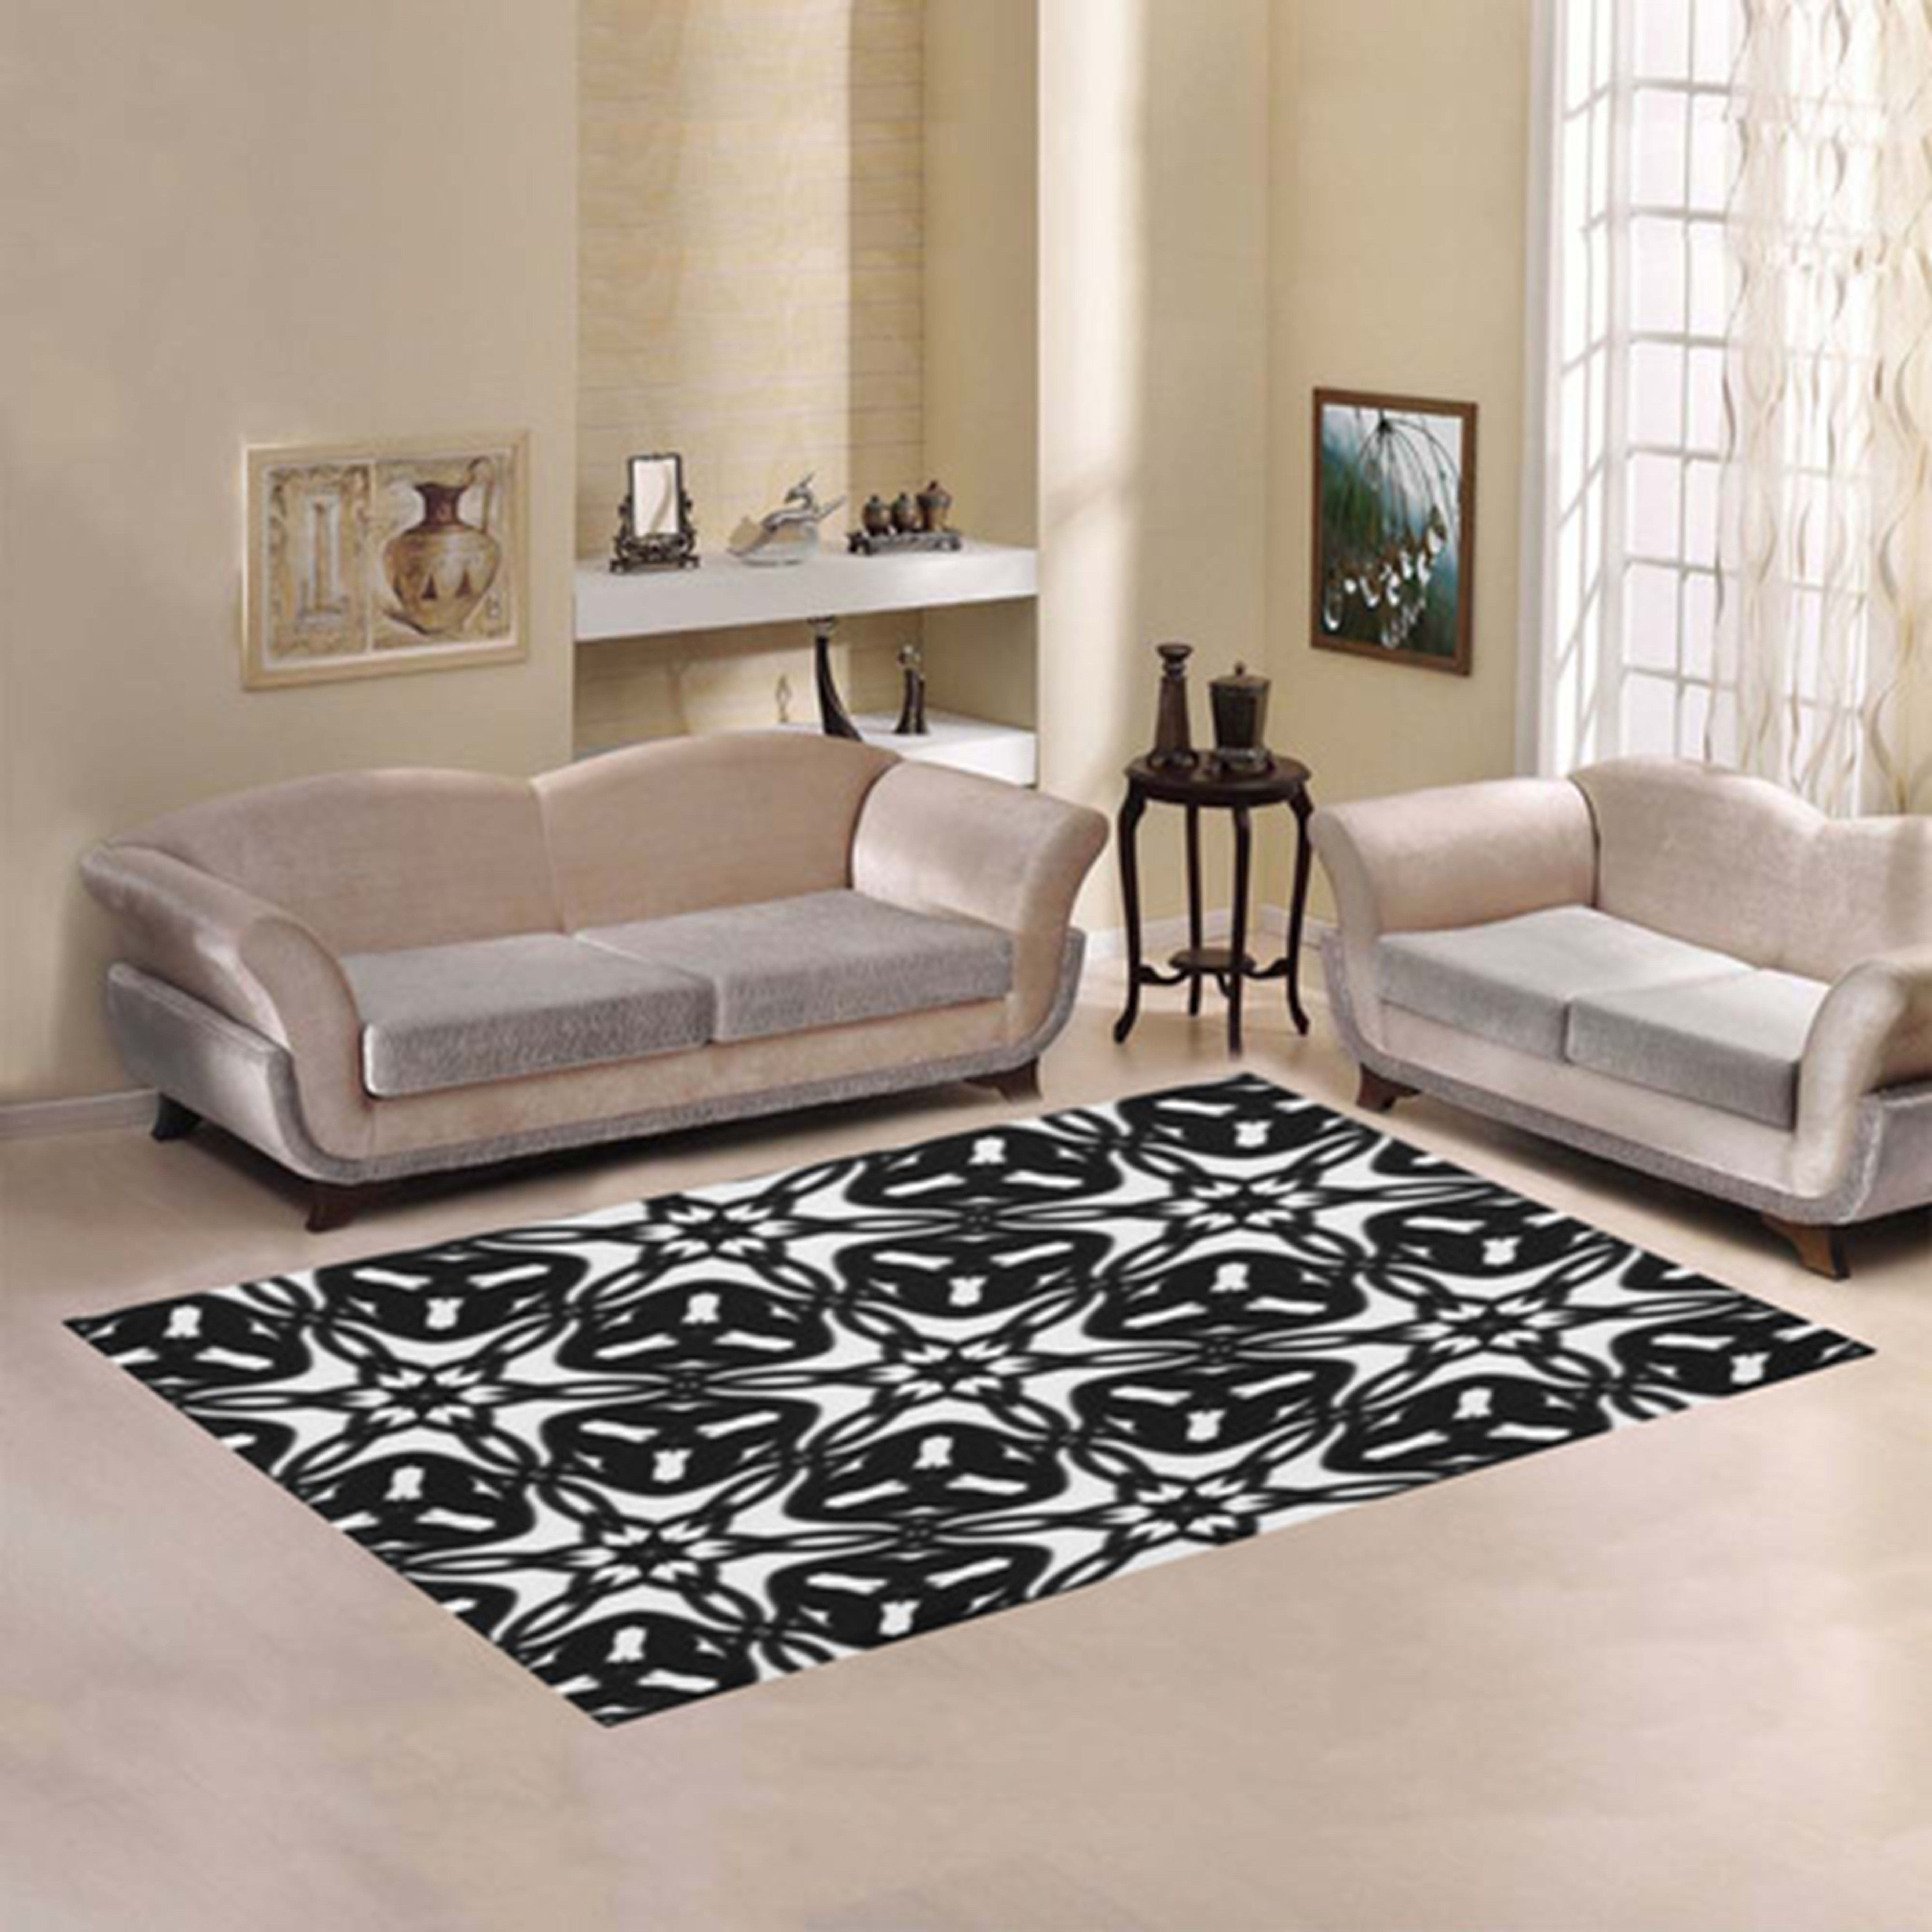 Black and White Star Flakes 9867 Area Rug. Matching curtains also available.